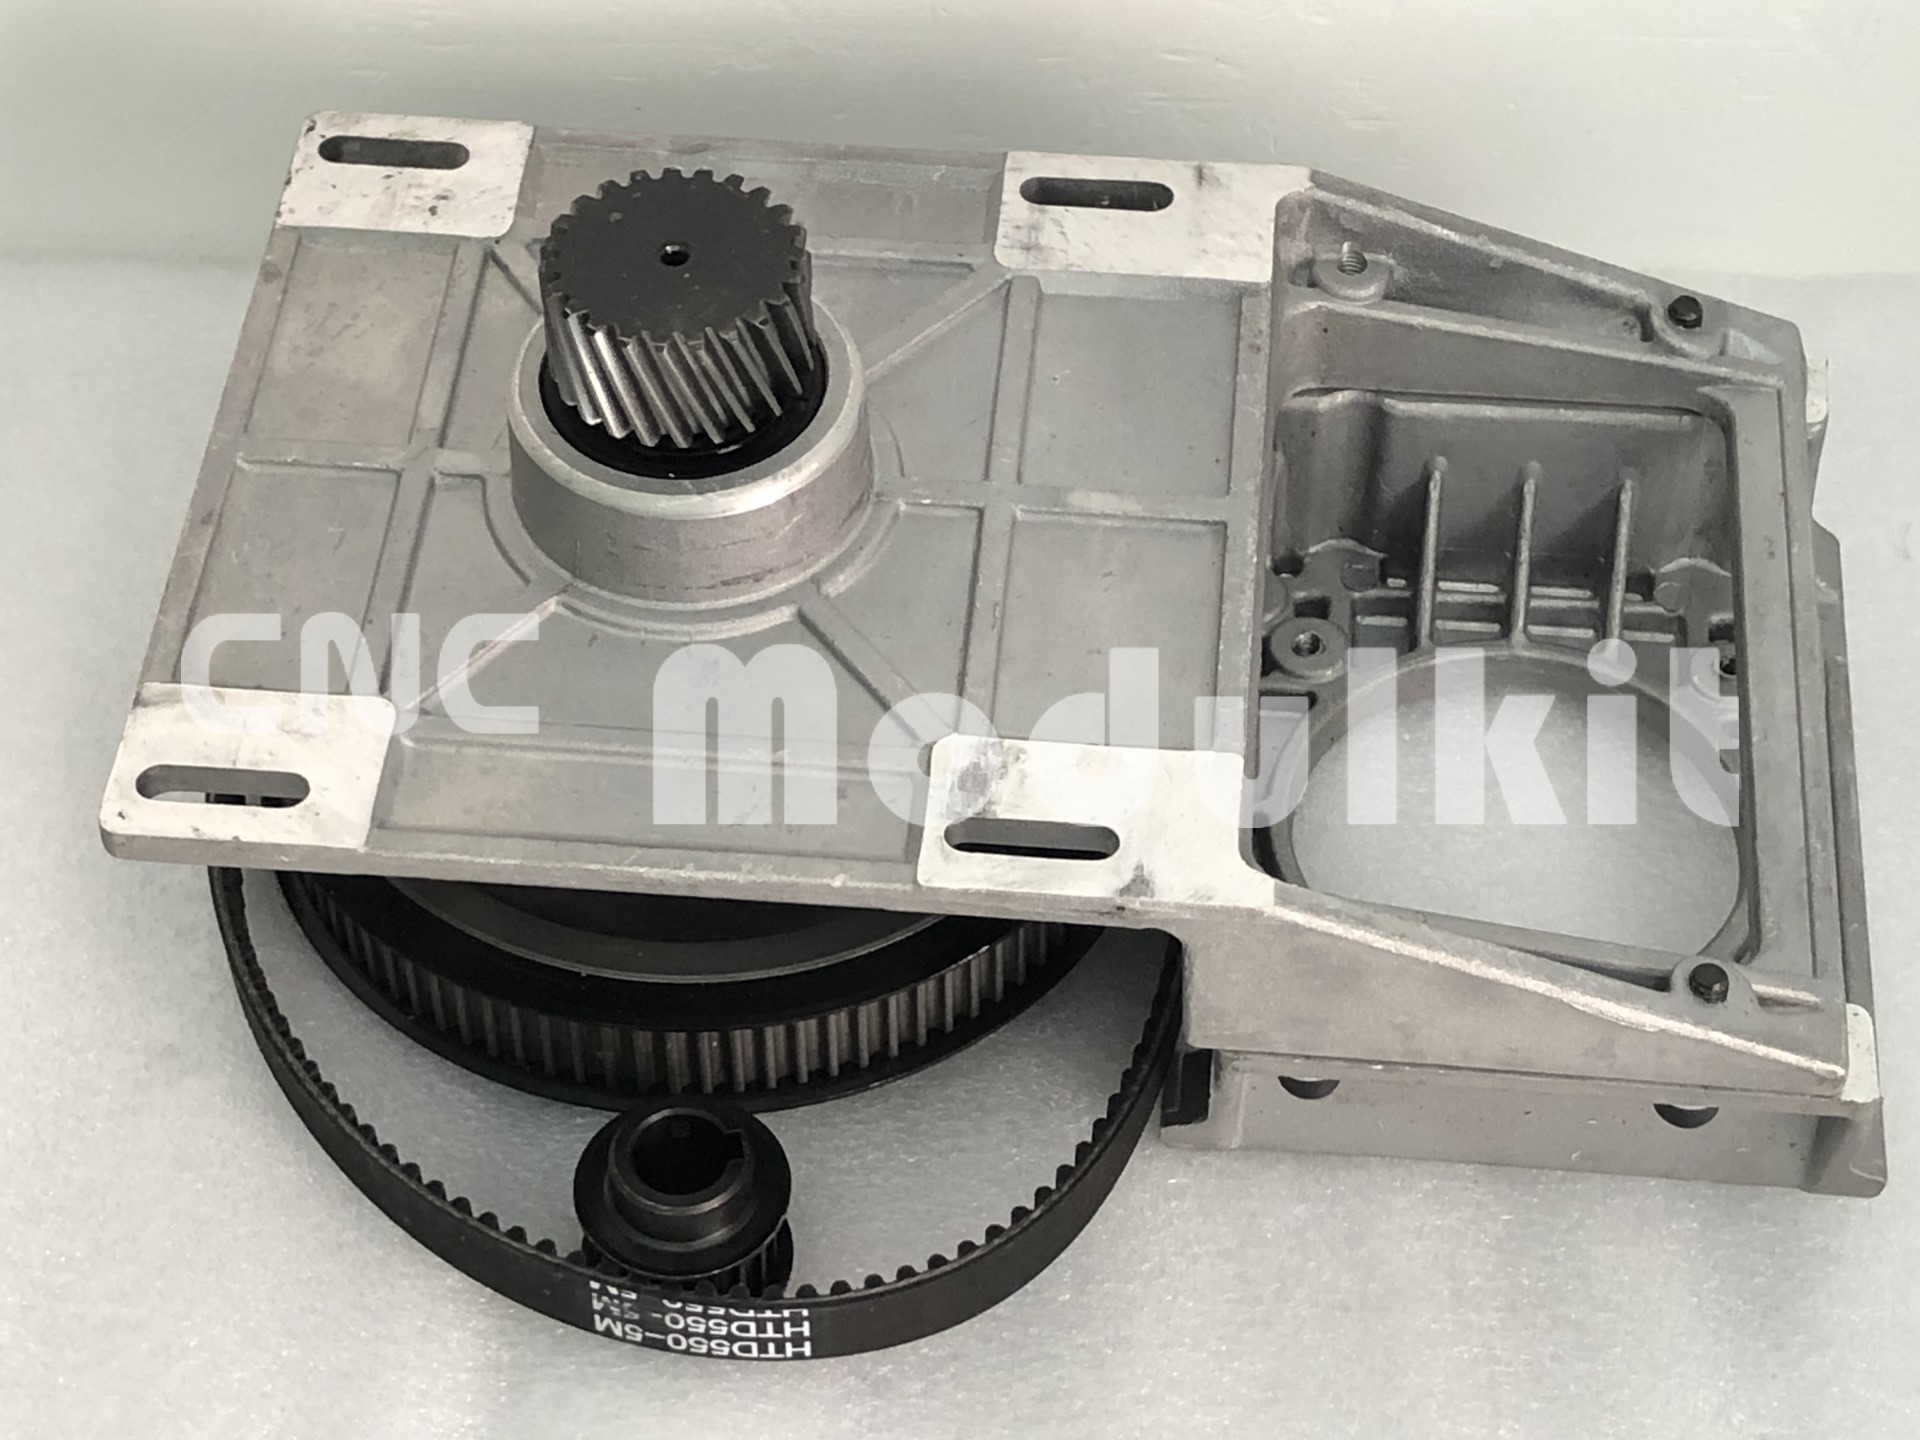 CNC Machinery Helical Gear Integrated Gear Iron Housing Reduction & Pinion & Pully & Belt In Complete Kit  By CNC Modulkit sticker